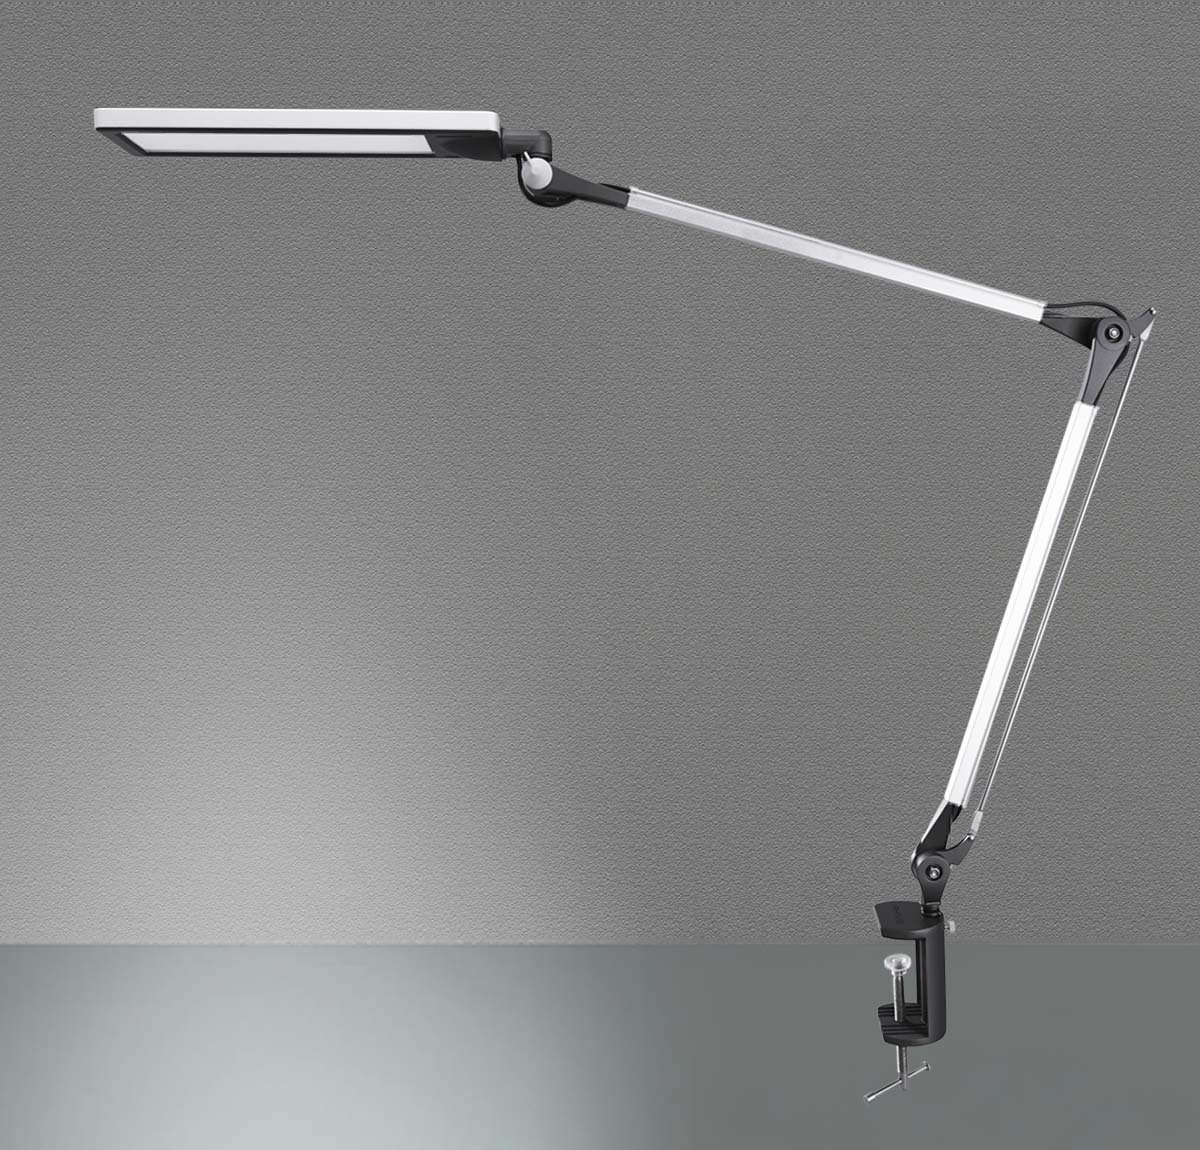 Metal Architect Swing Arm LED Desk Lamp - Top Metal Table Lamp for Working and Studying